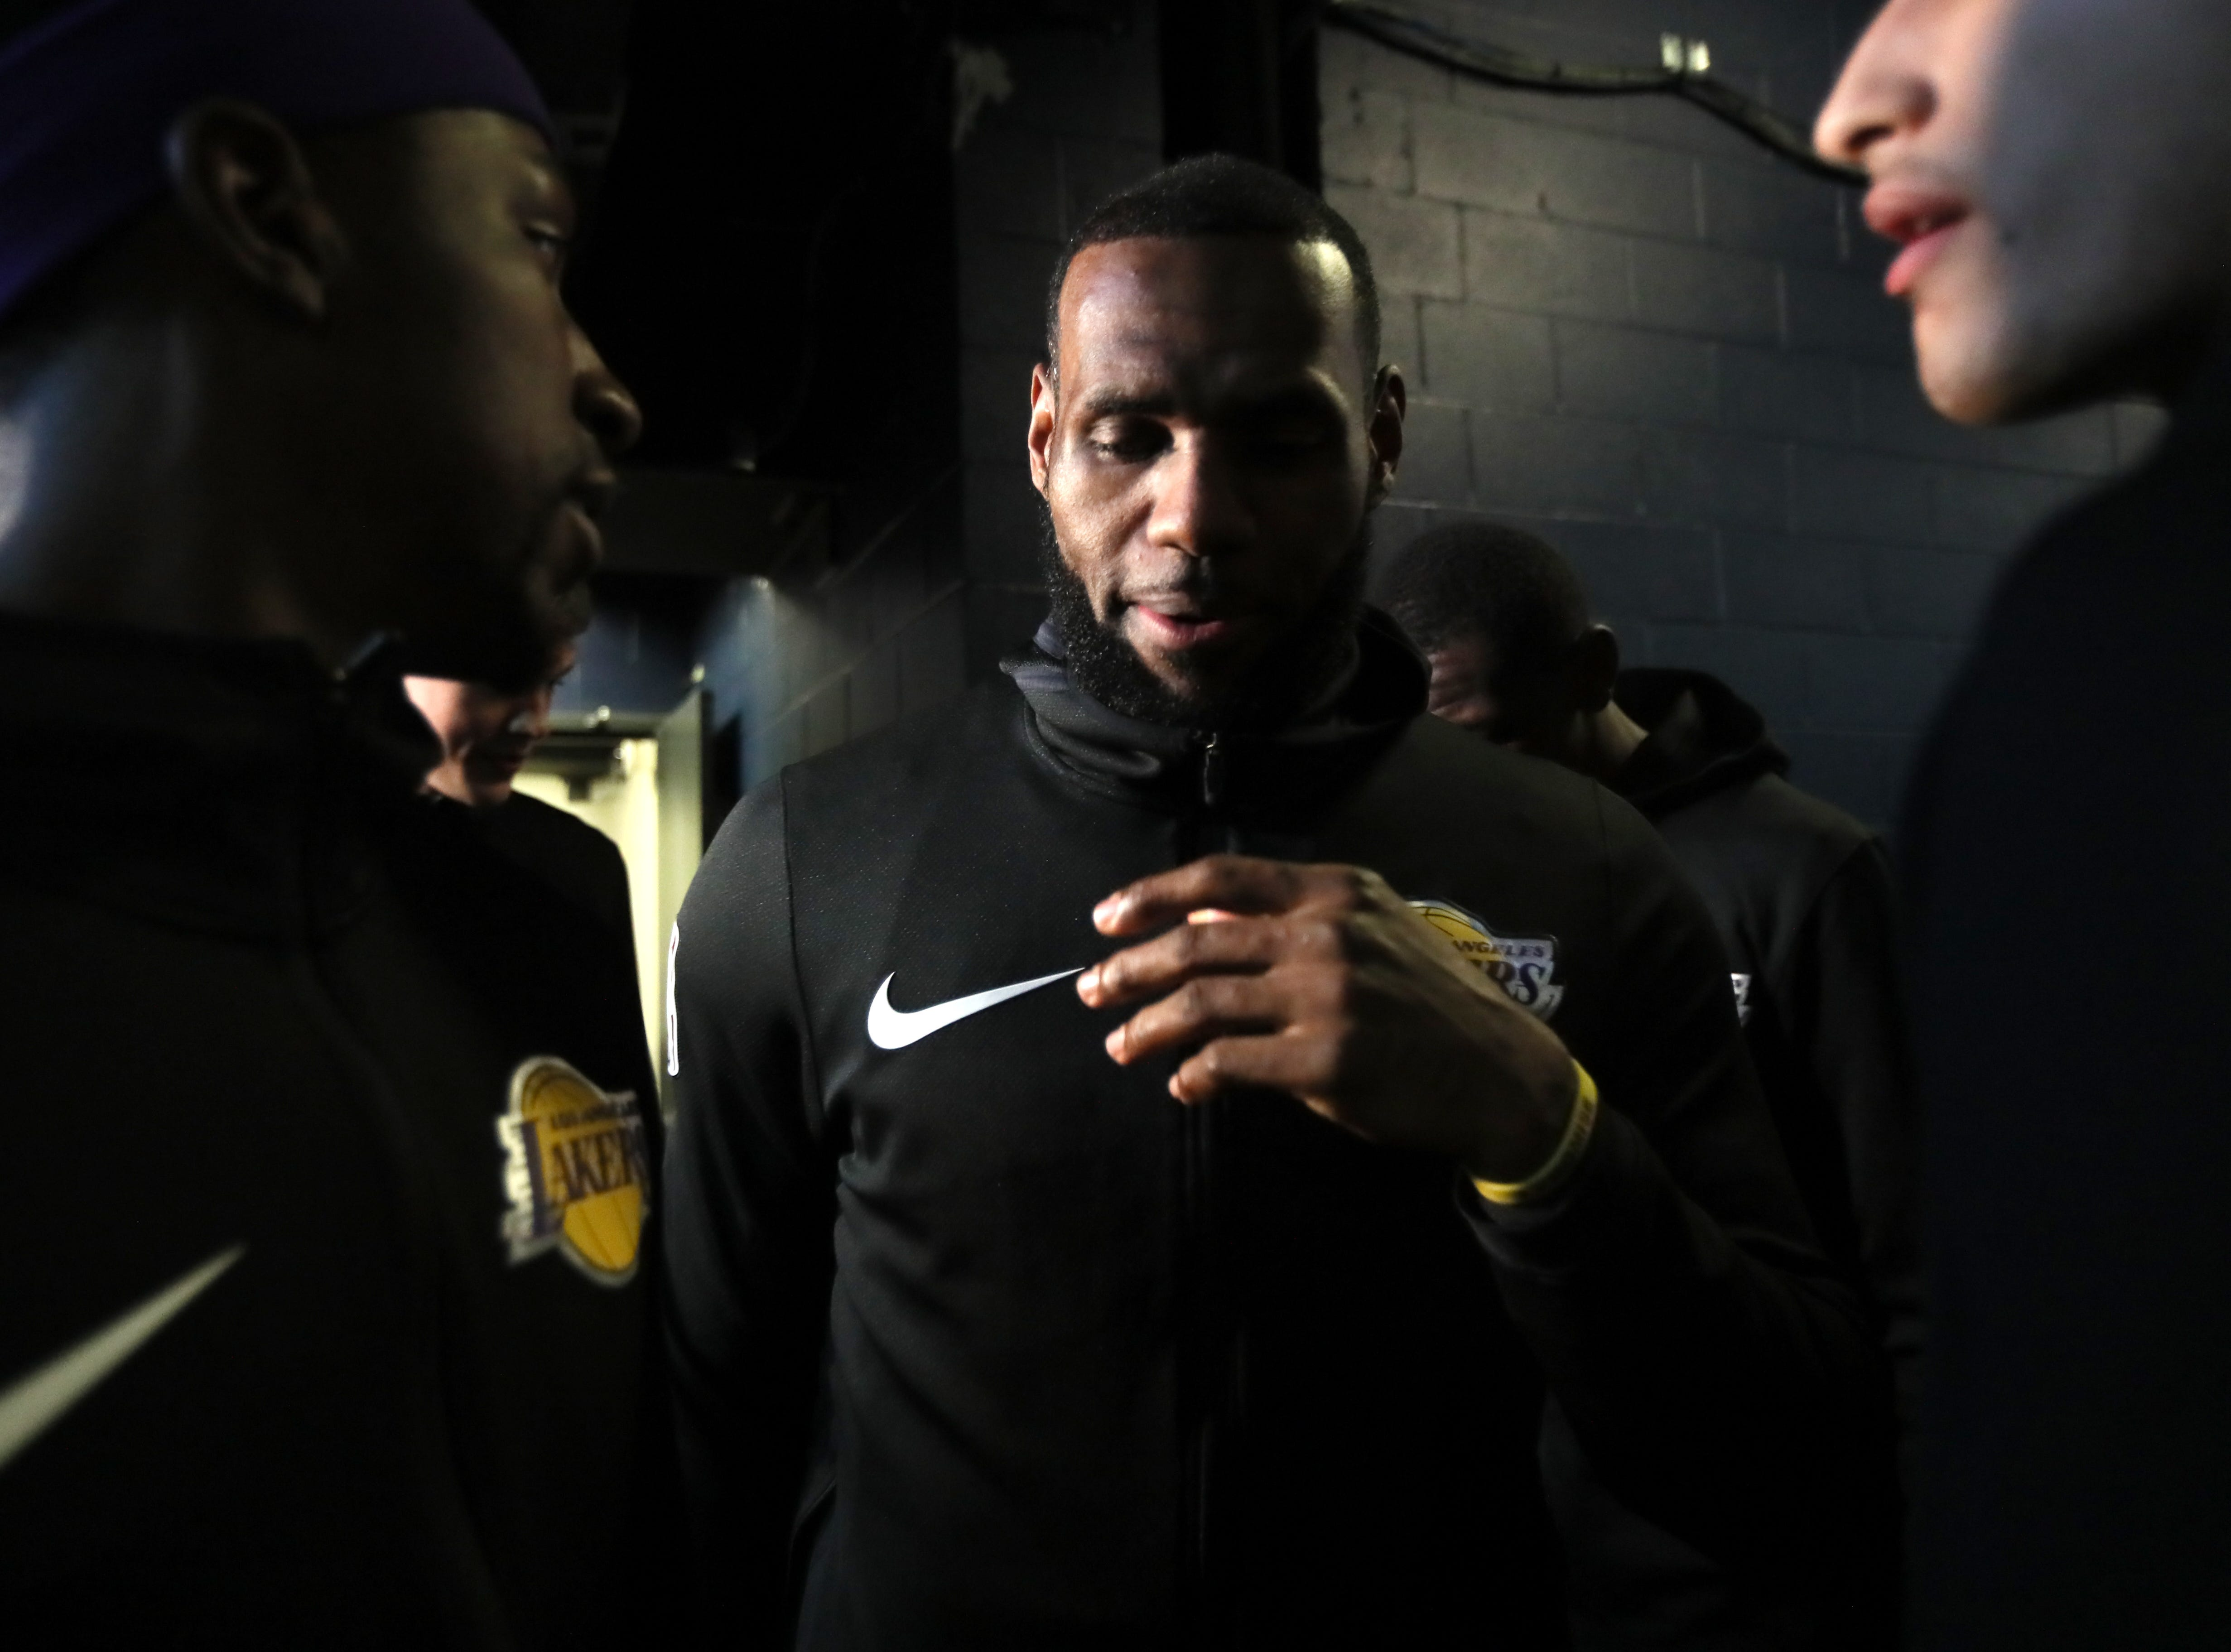 Los Angeles Lakers forward LeBrron James huddles up with his teammates before their game against the Memphis Grizzlies at the FedExForum on Saturday, Dec. 6, 2018.